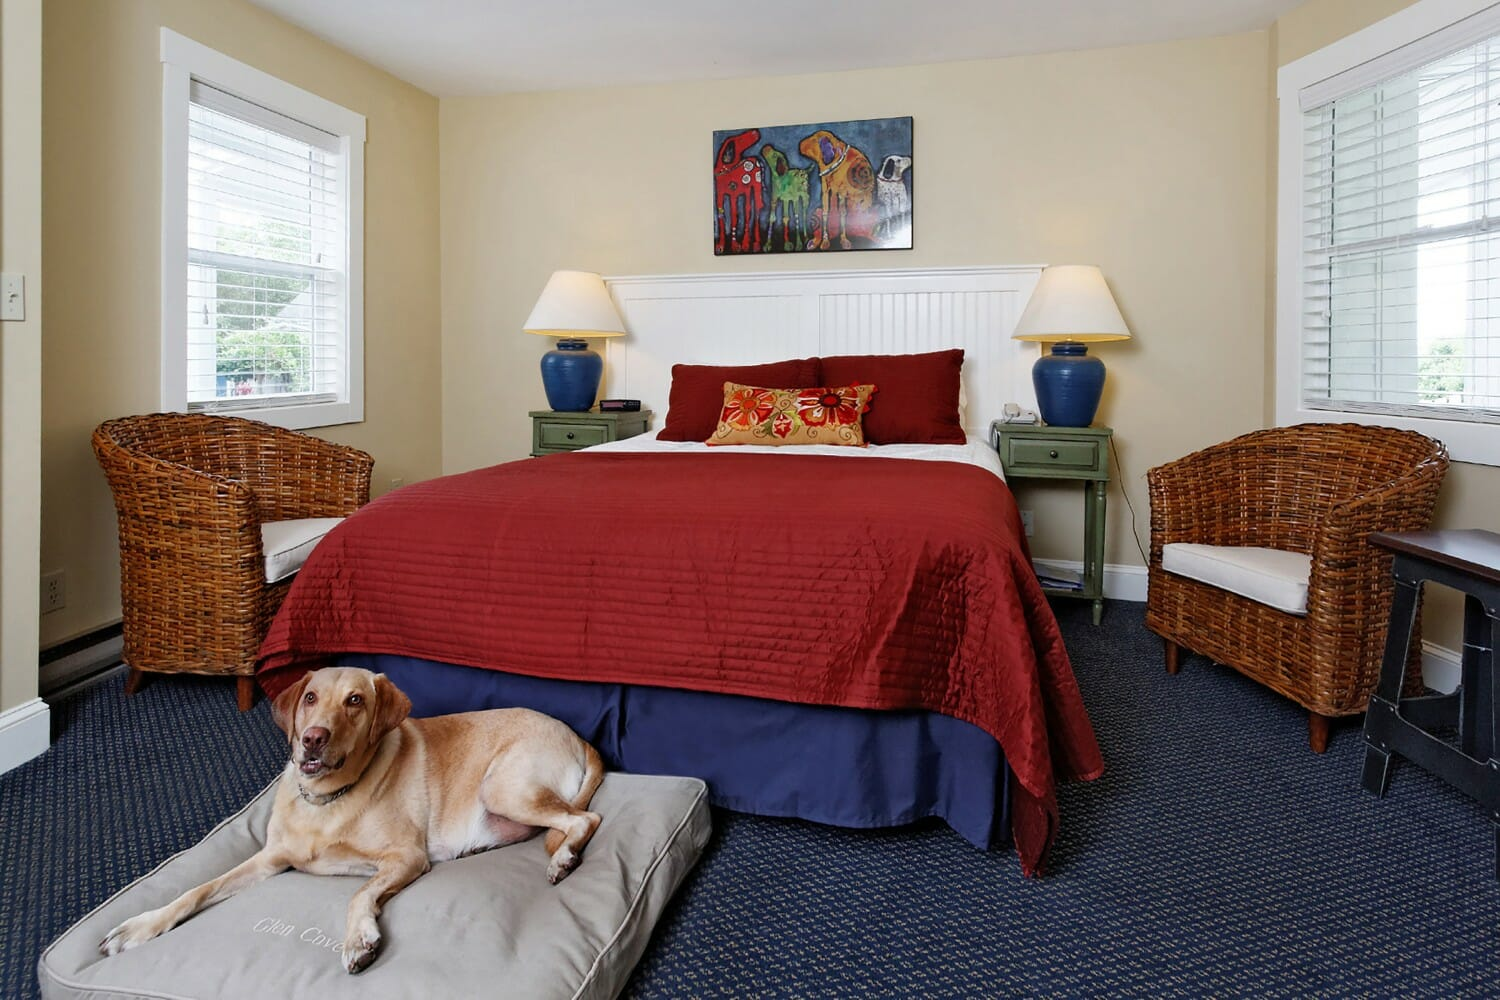 pet-friendly hotel near boat rentals tours in rockland rockport maine